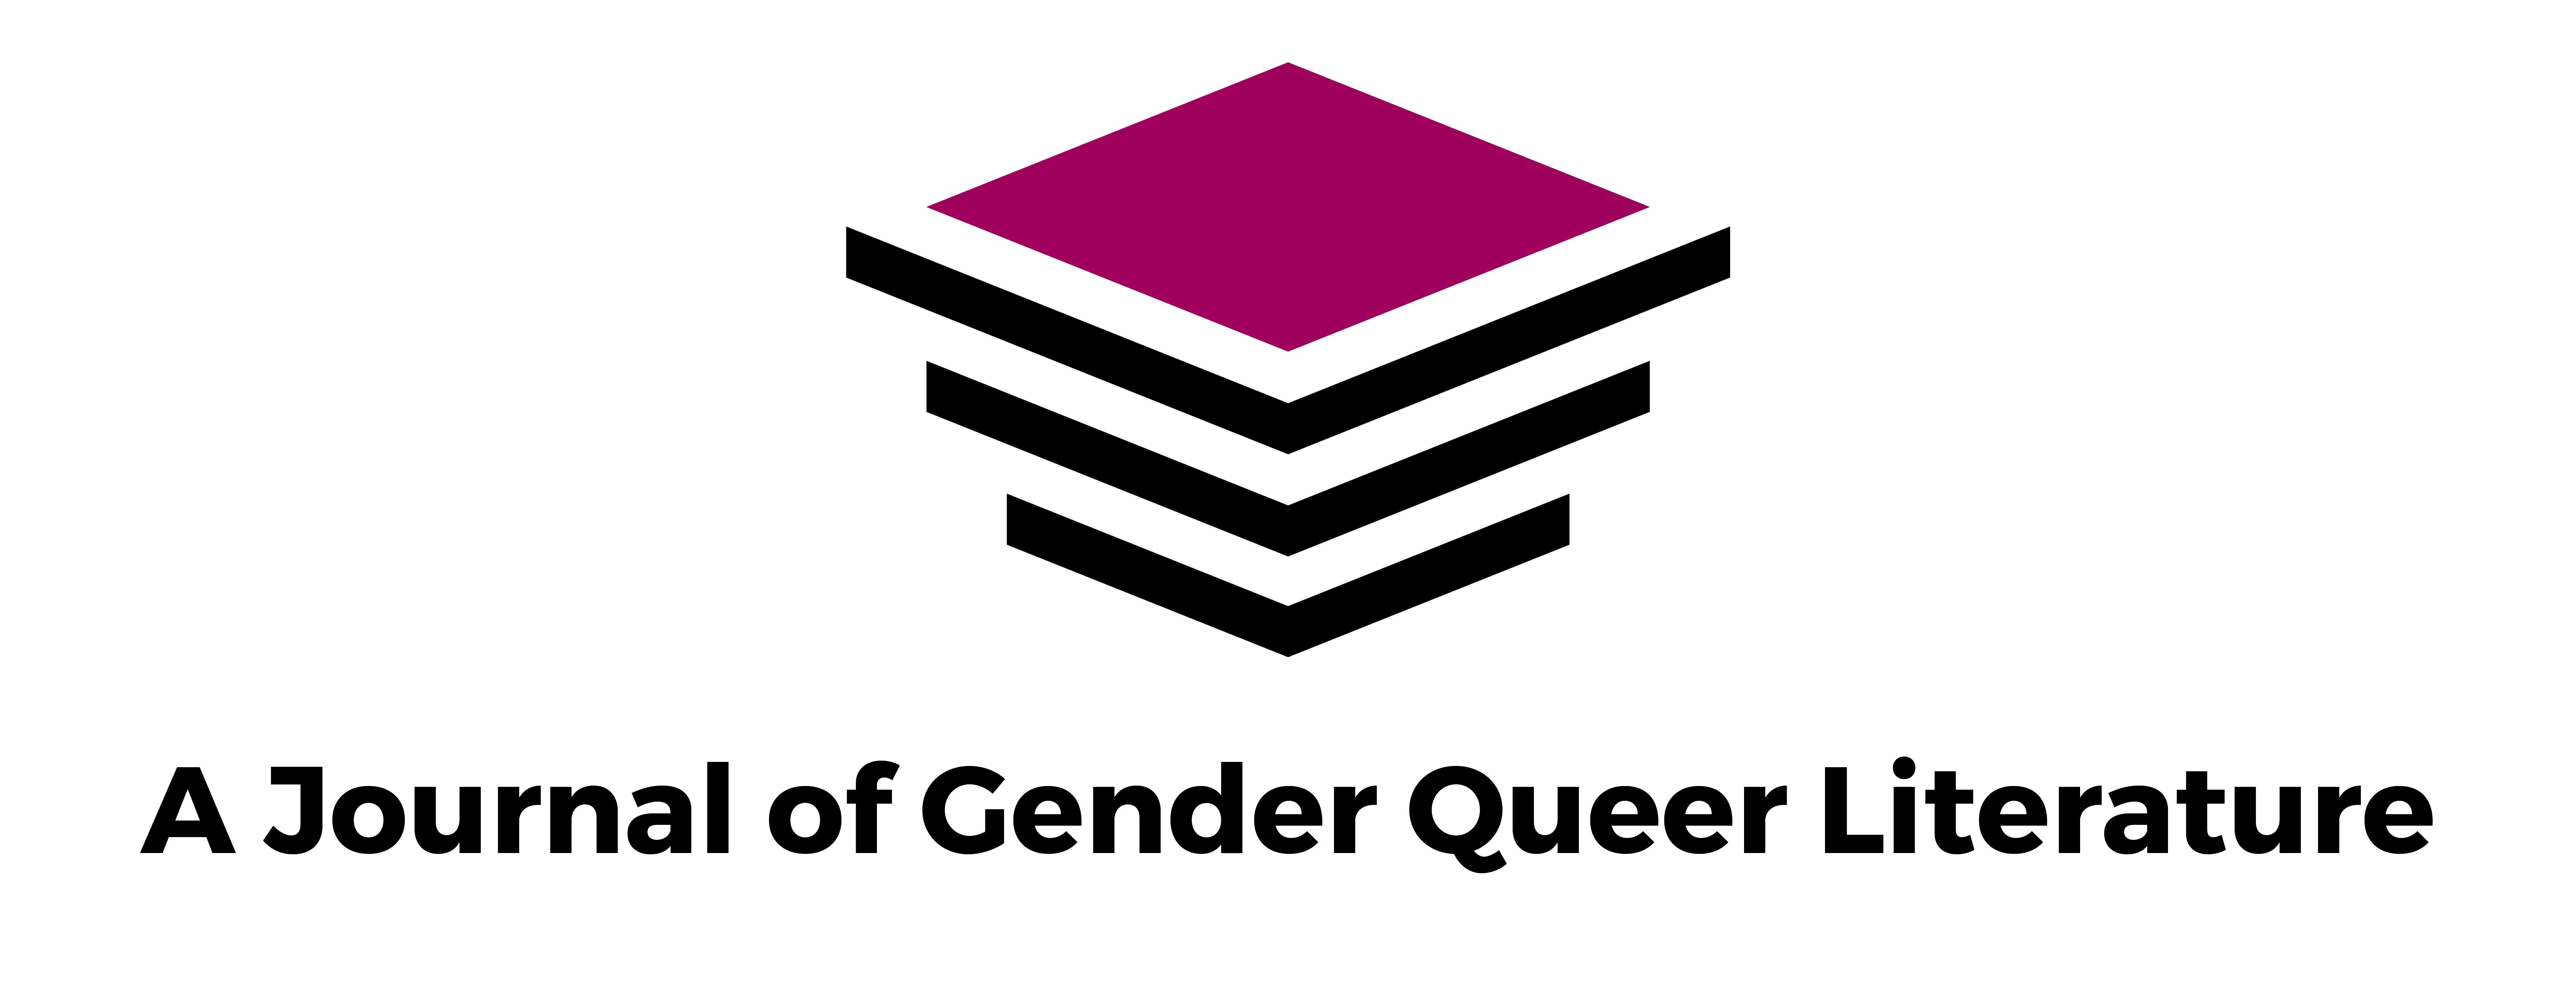 A Journal of Gender Queer Literature